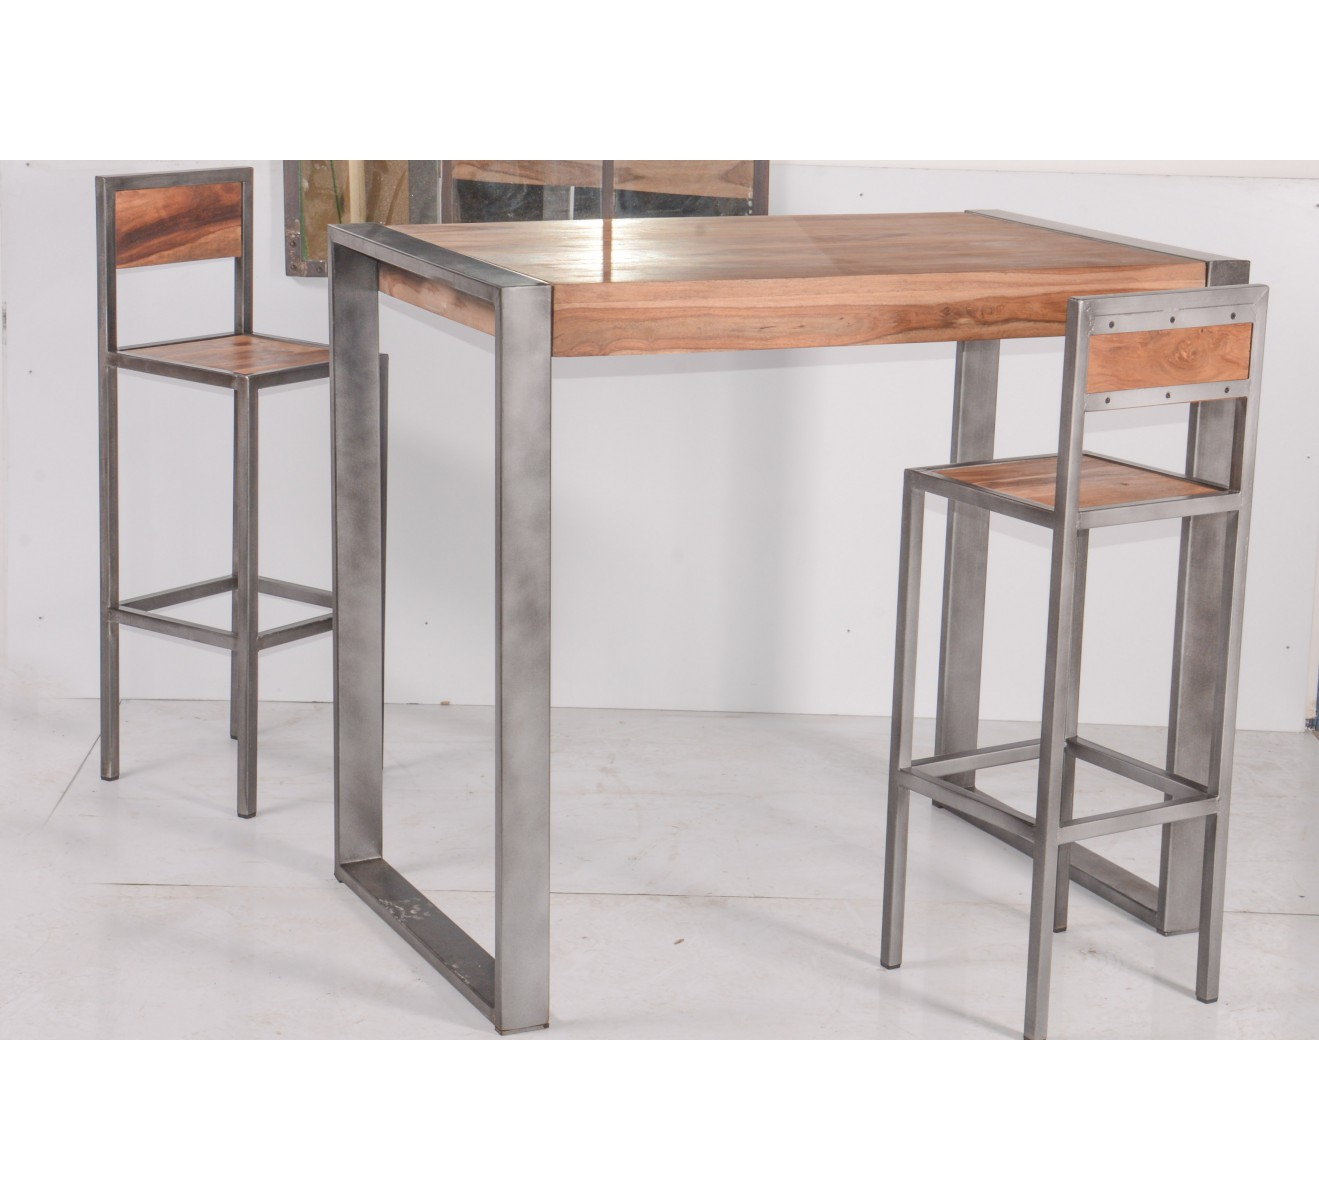 Tabouret de bar industriel en m tal et bois 39 industry 6748 for Table de bar en bois